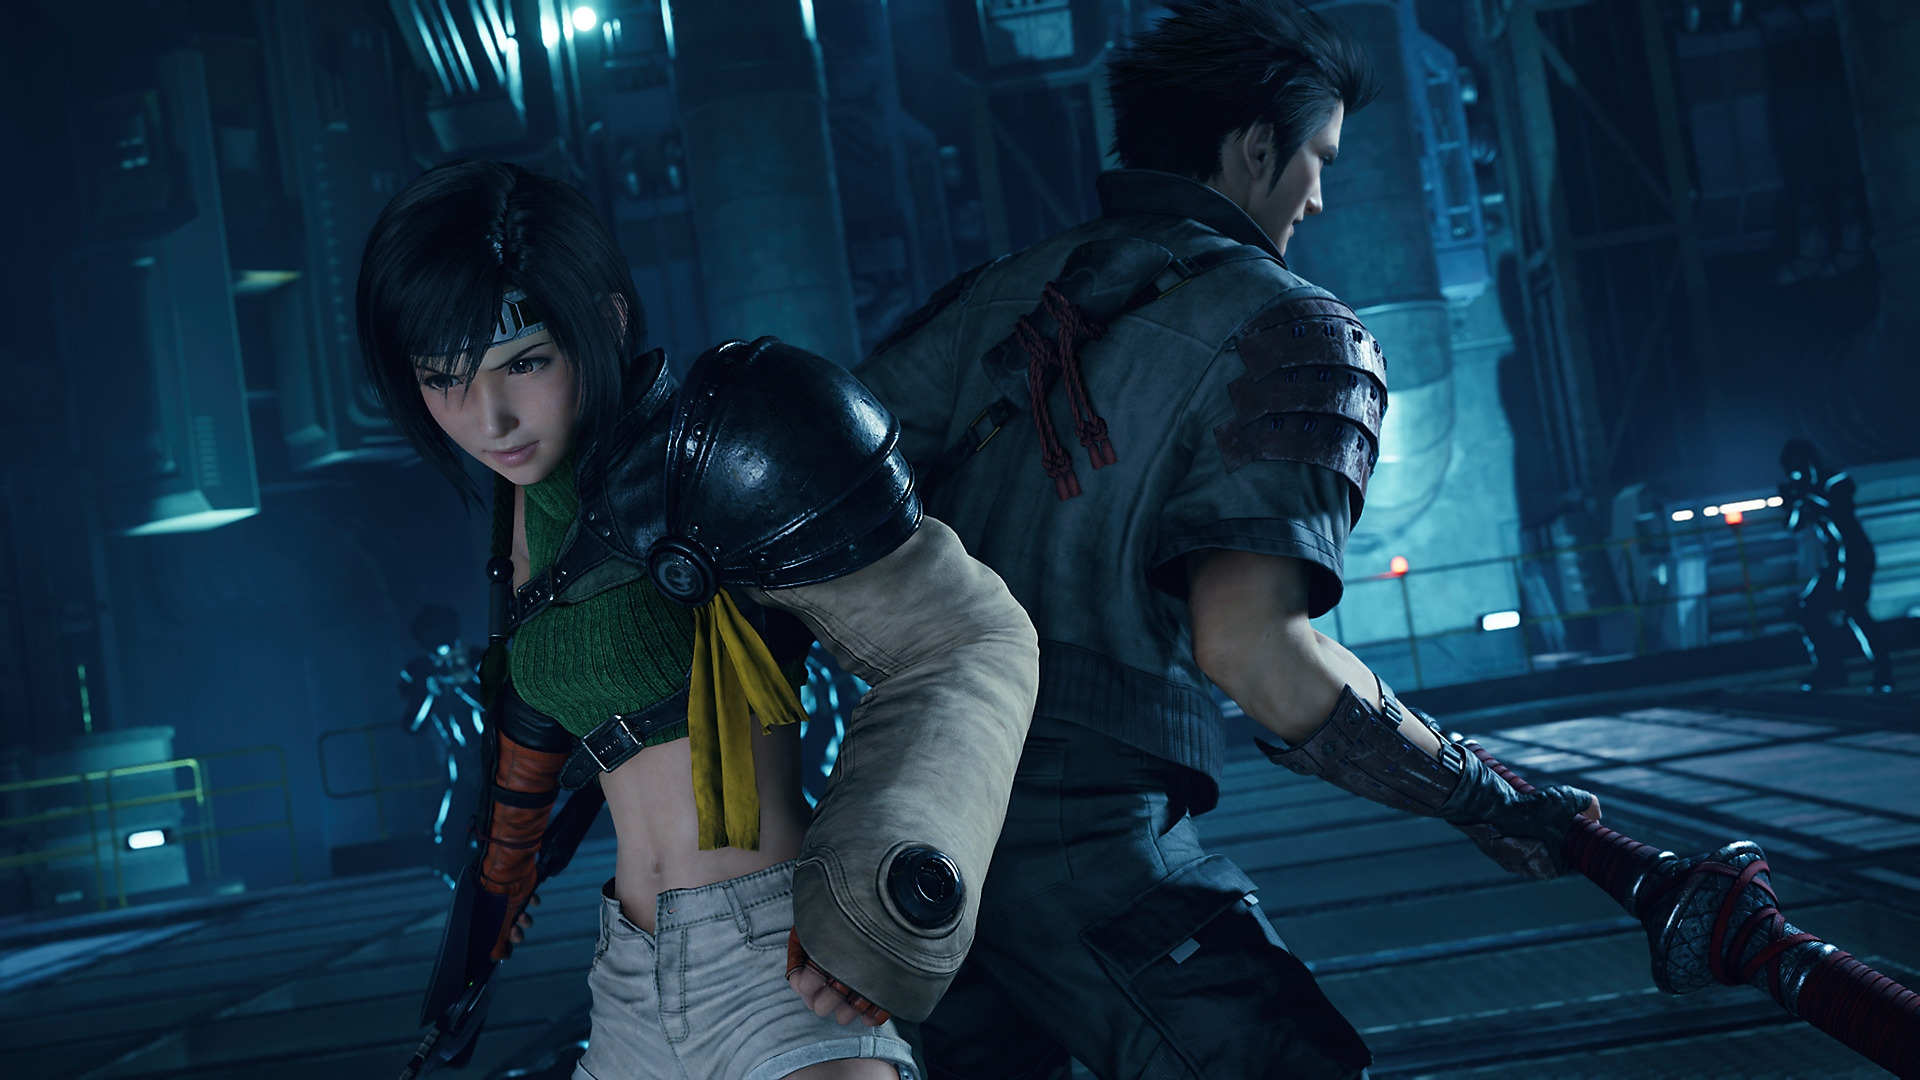 Final Fantasy VII Remake Intergrade - Gallery Screenshot 1